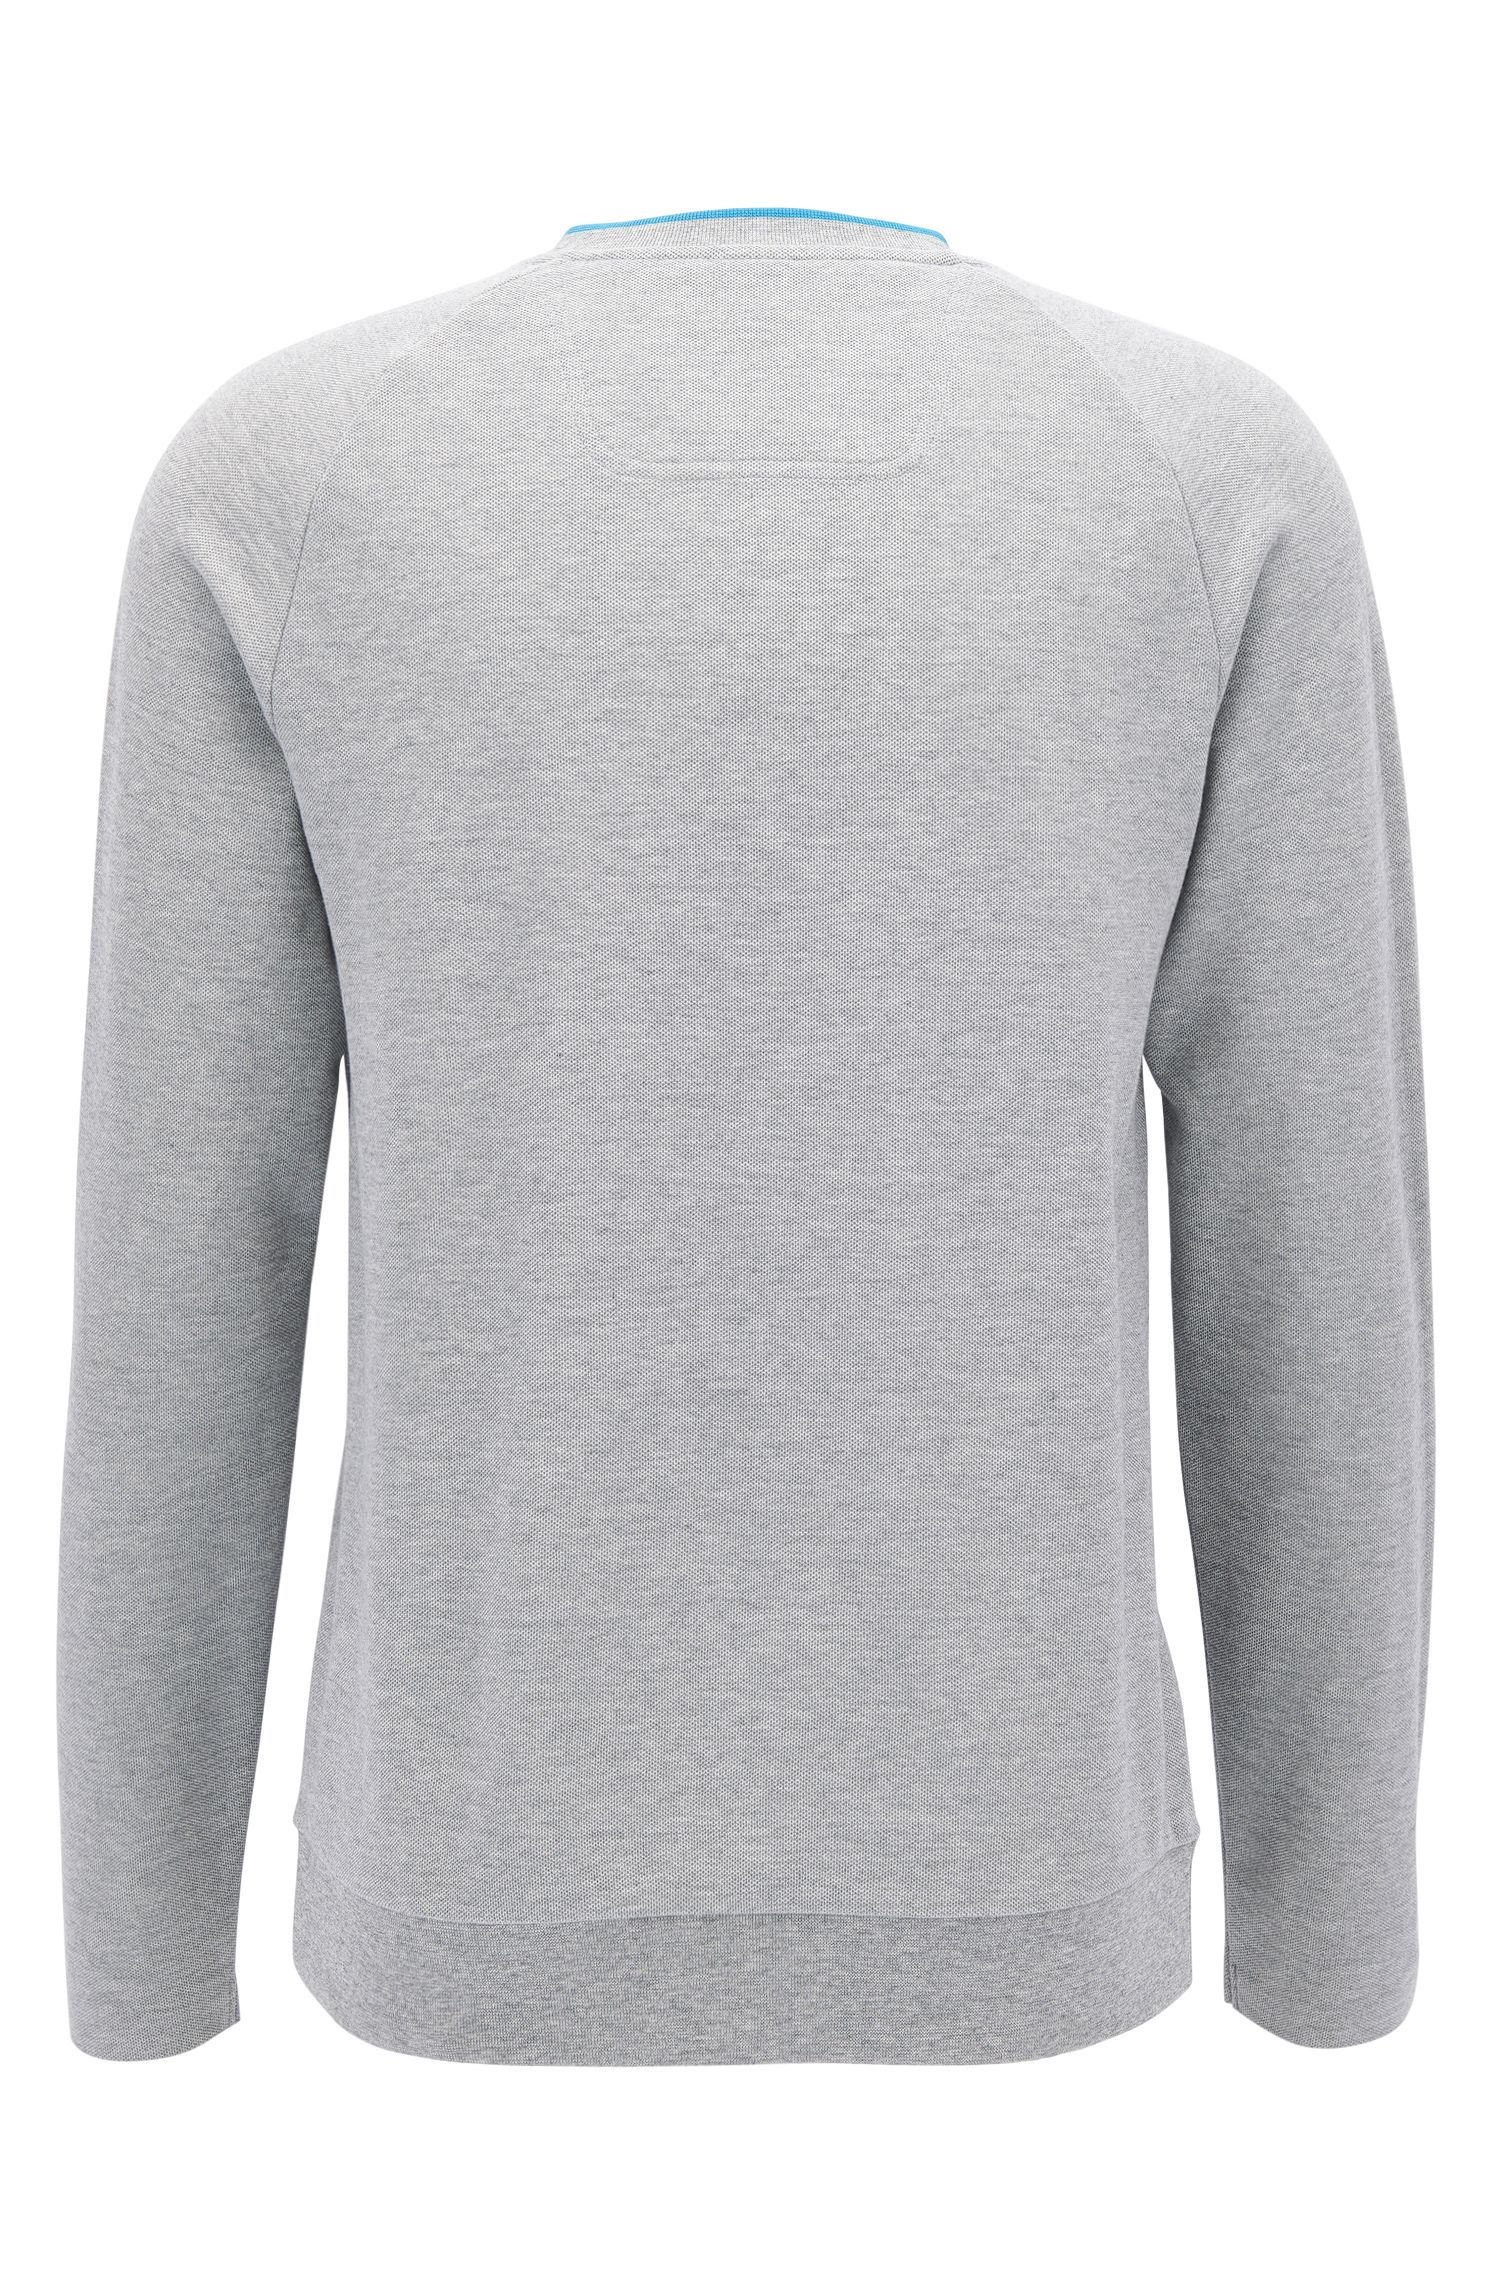 Cotton piqué sweatshirt with seamless sides